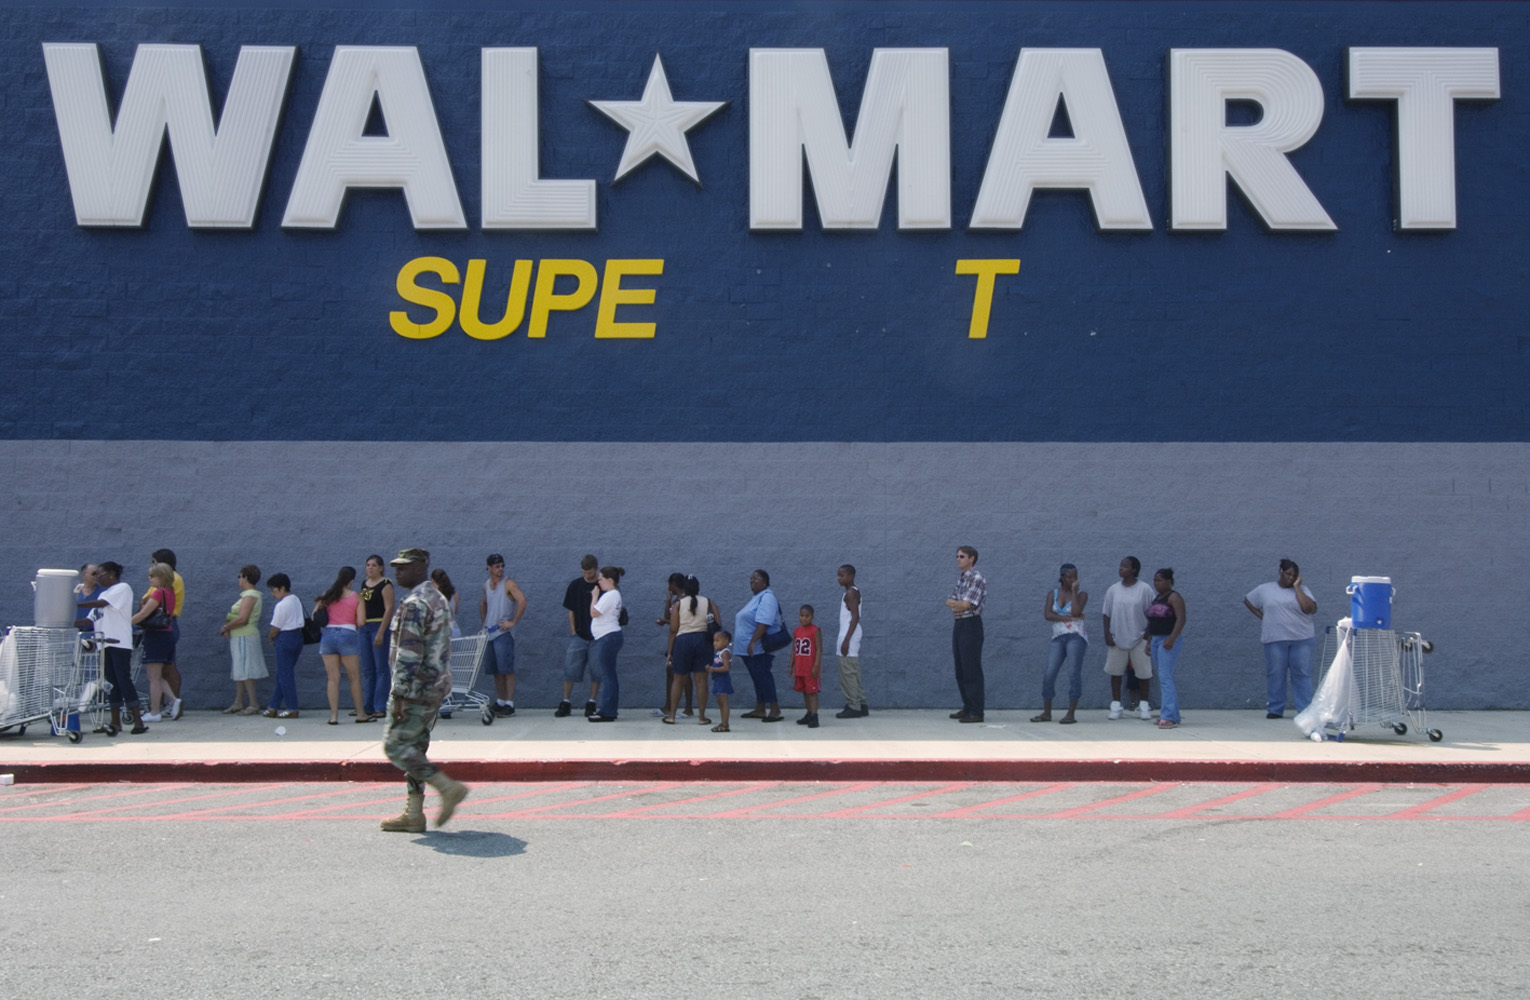 18 September 2005 Location: Boutte, community near Orleans, Lousiana, US. A National Guard soldier patrols outside a Wal-Mart store as residents wait to purchase emergency supplies.  Police and soldiers with assault rifles have been guarding the store around the clock.